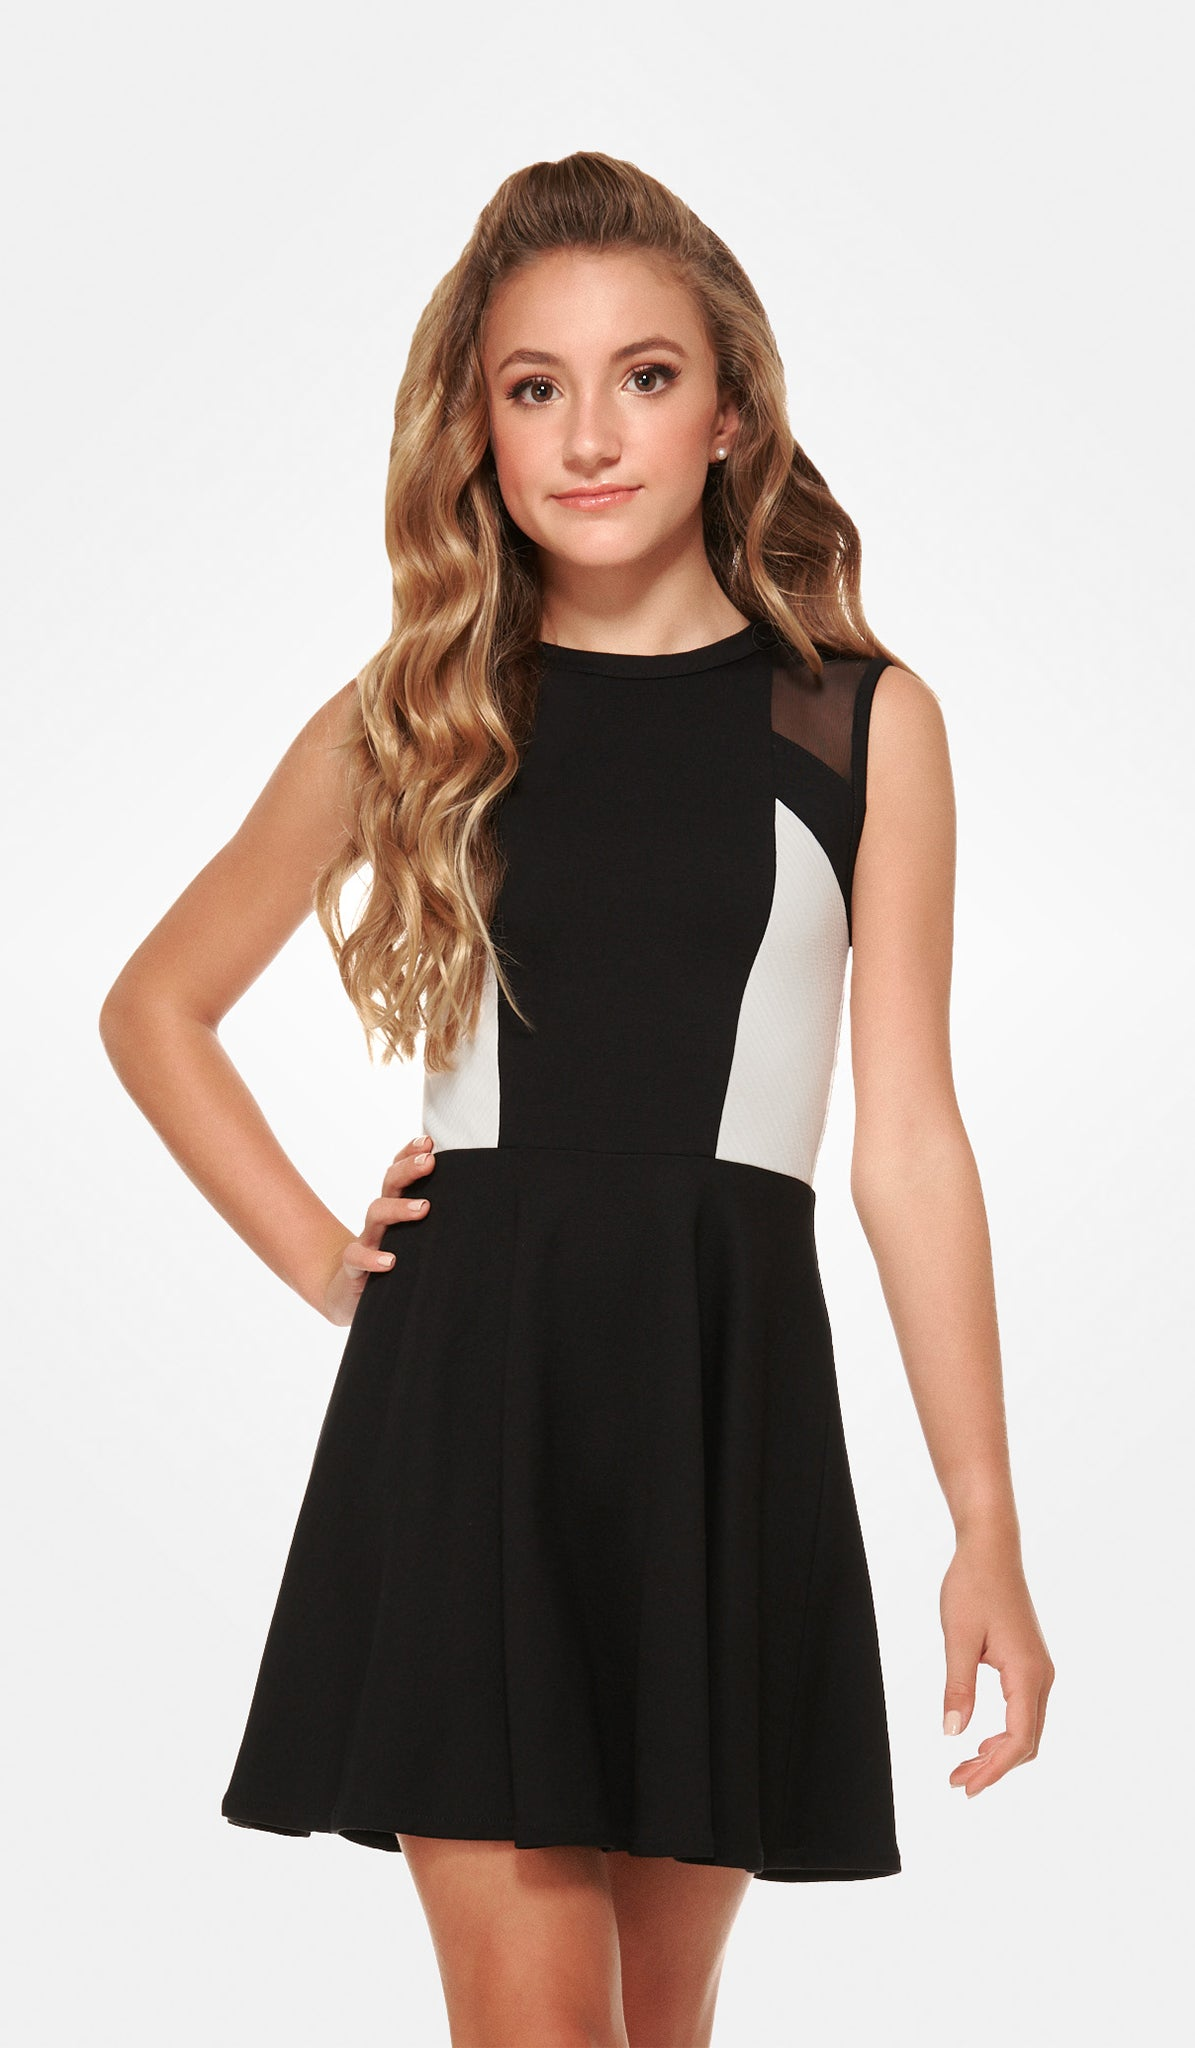 THE BRITT DRESS - Sallymiller.com - [variant title] - | Event & Party Dresses for Tween Girls & Juniors | Weddings Dresses, Bat Mitzvah Dresses, Sweet Sixteen Dresses, Graduation Dresses, Birthday Party Dresses, Bar Mitzvah Dresses, Cotillion Dresses